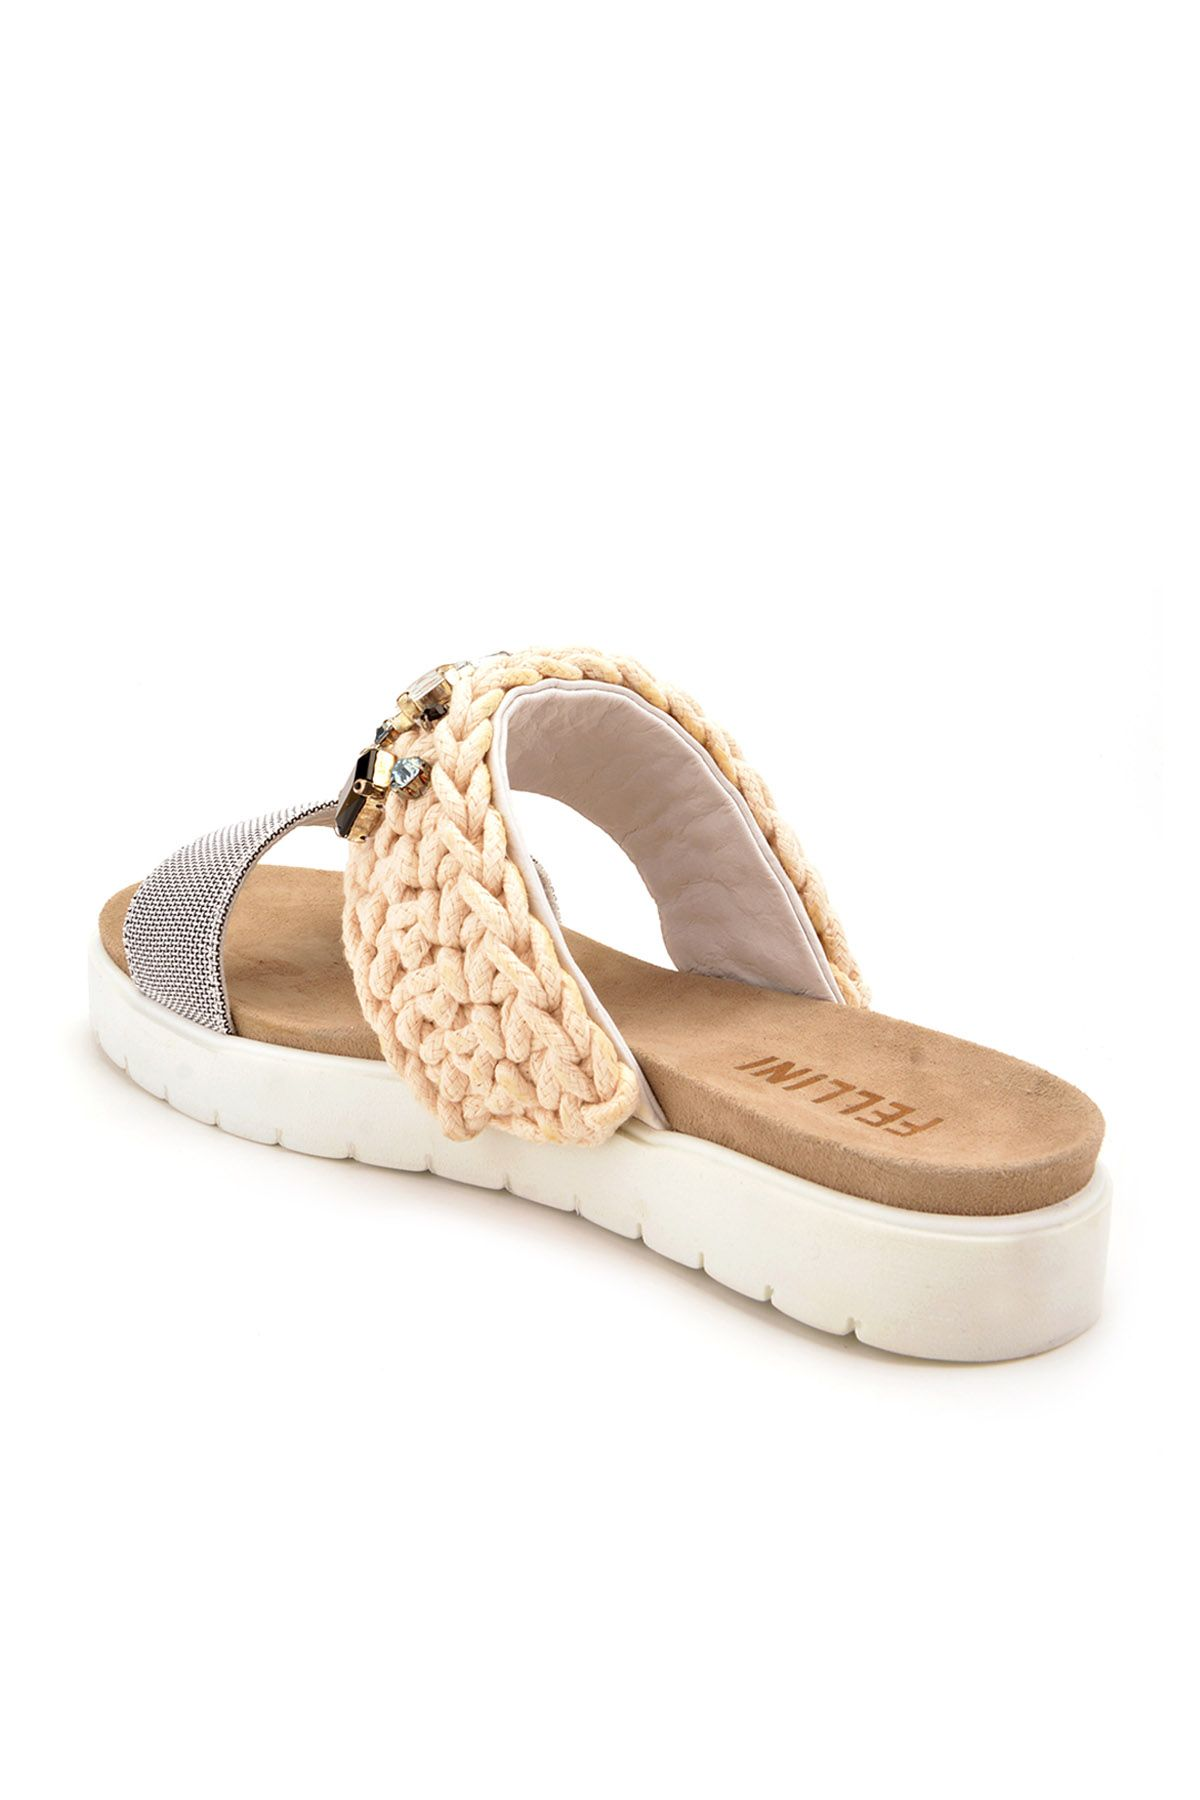 Fln Women Slippers From Genuine Leather And Cotton Cord Beige